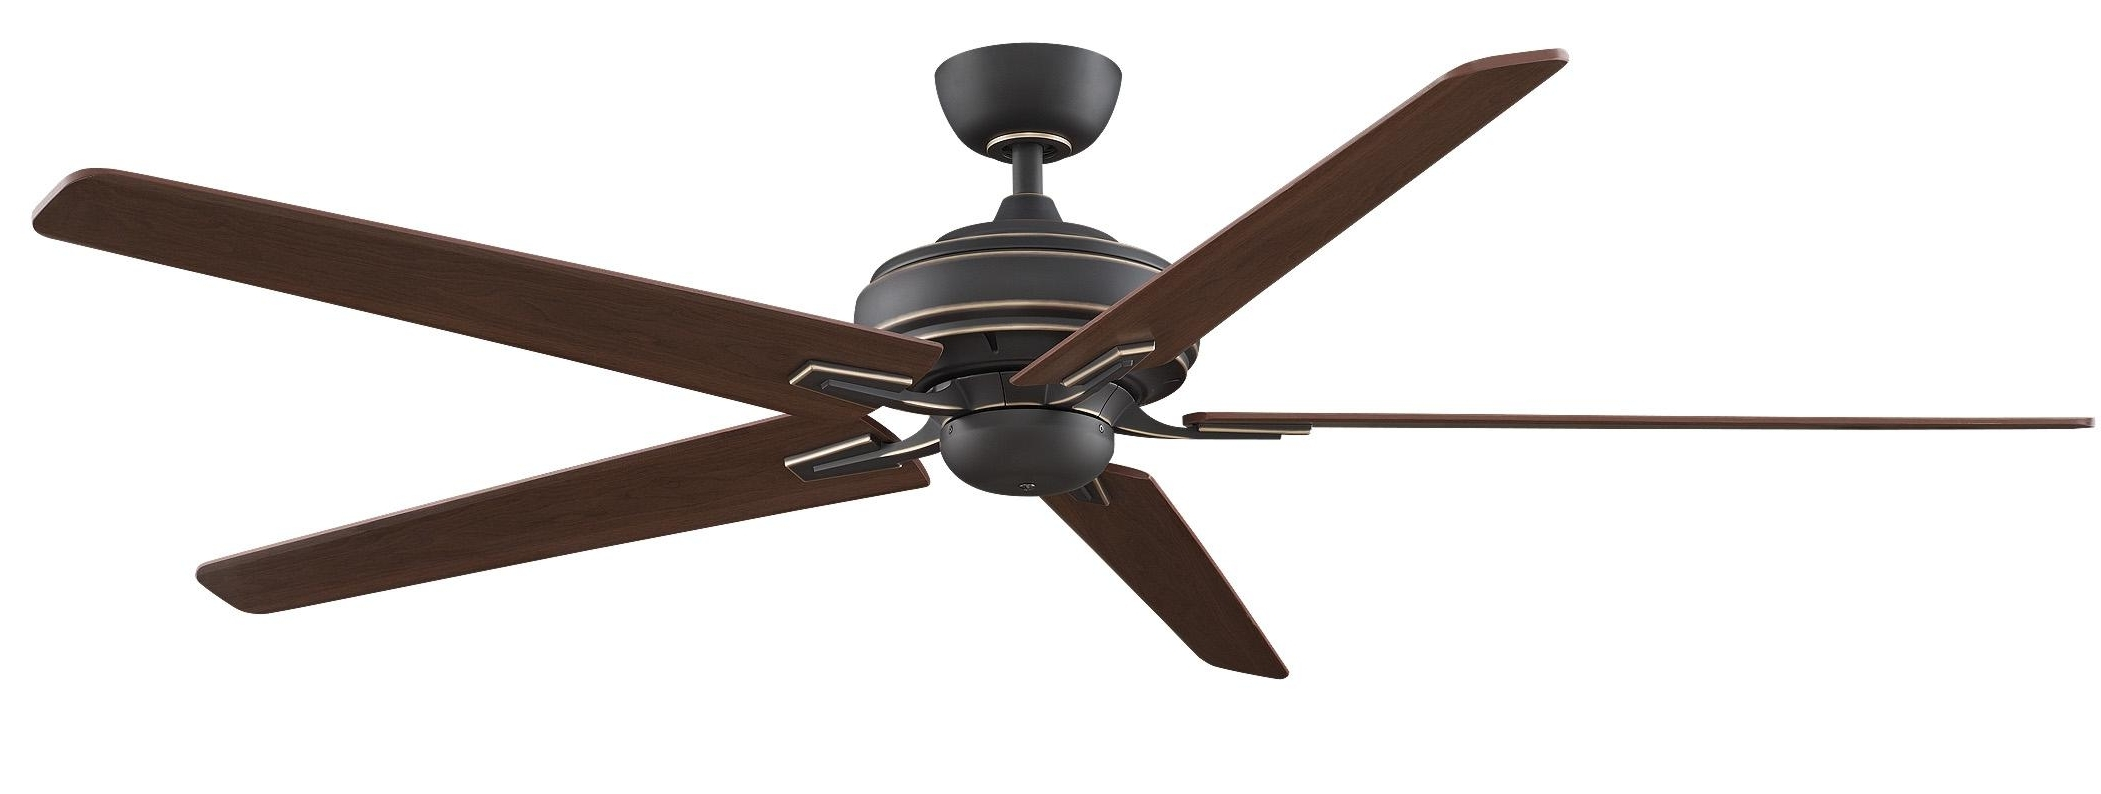 Craftsman Outdoor Ceiling Fans Within Most Up To Date Inch Outdoor Ceiling Fan With 60 Ceiling Fan With Light (View 6 of 20)